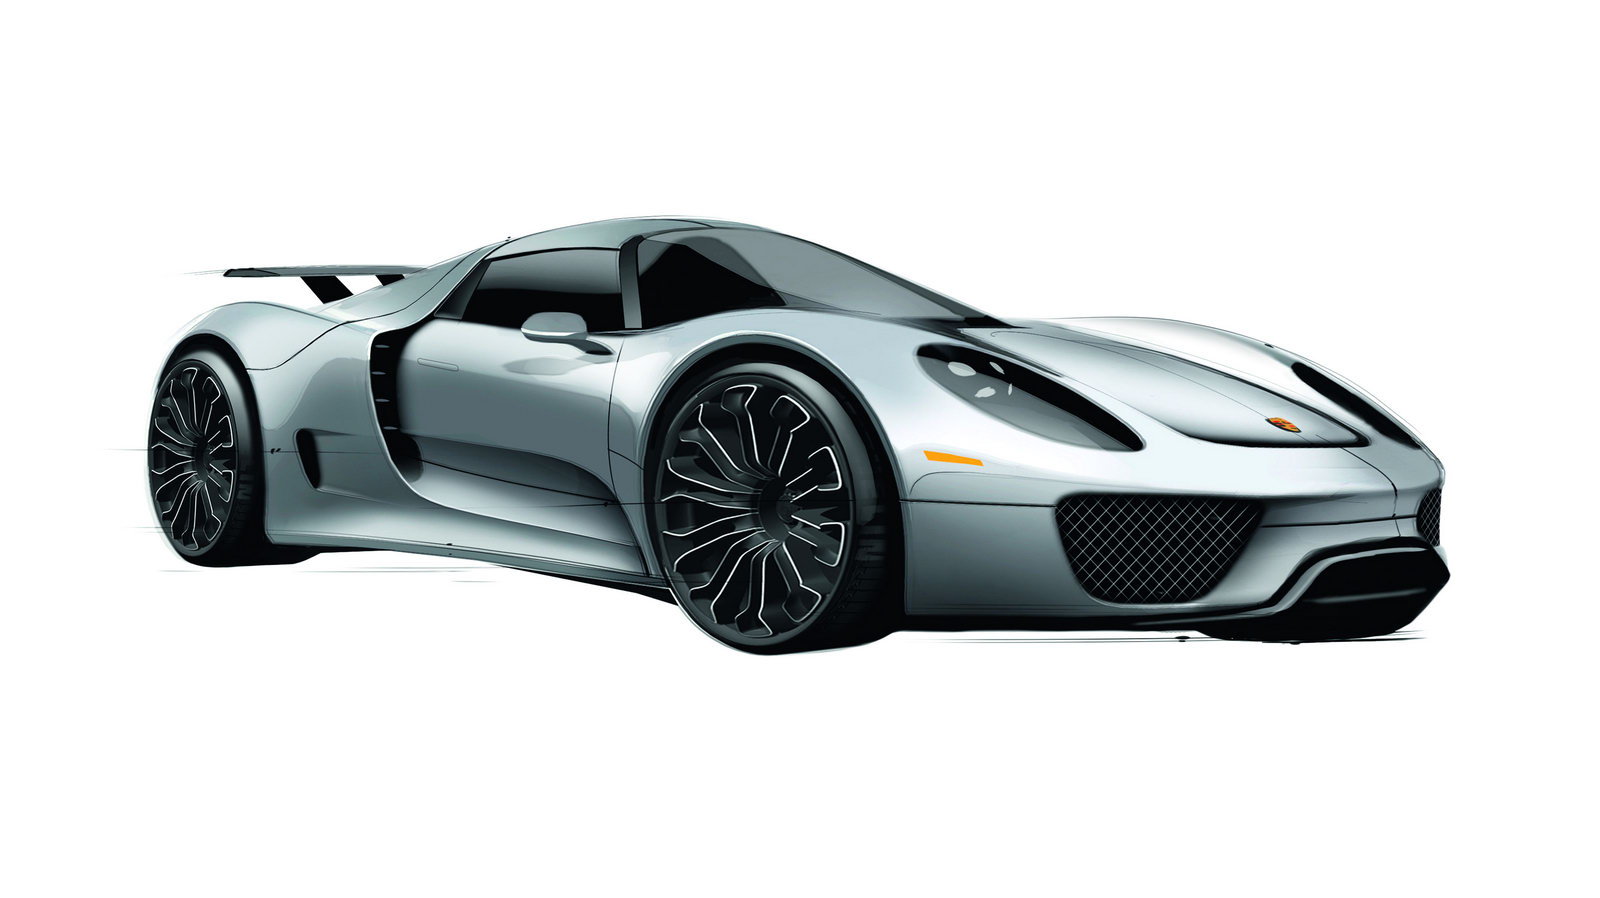 Porsche 918 Spyder 1 Porsche Announced Price Rate on 918 Spyder